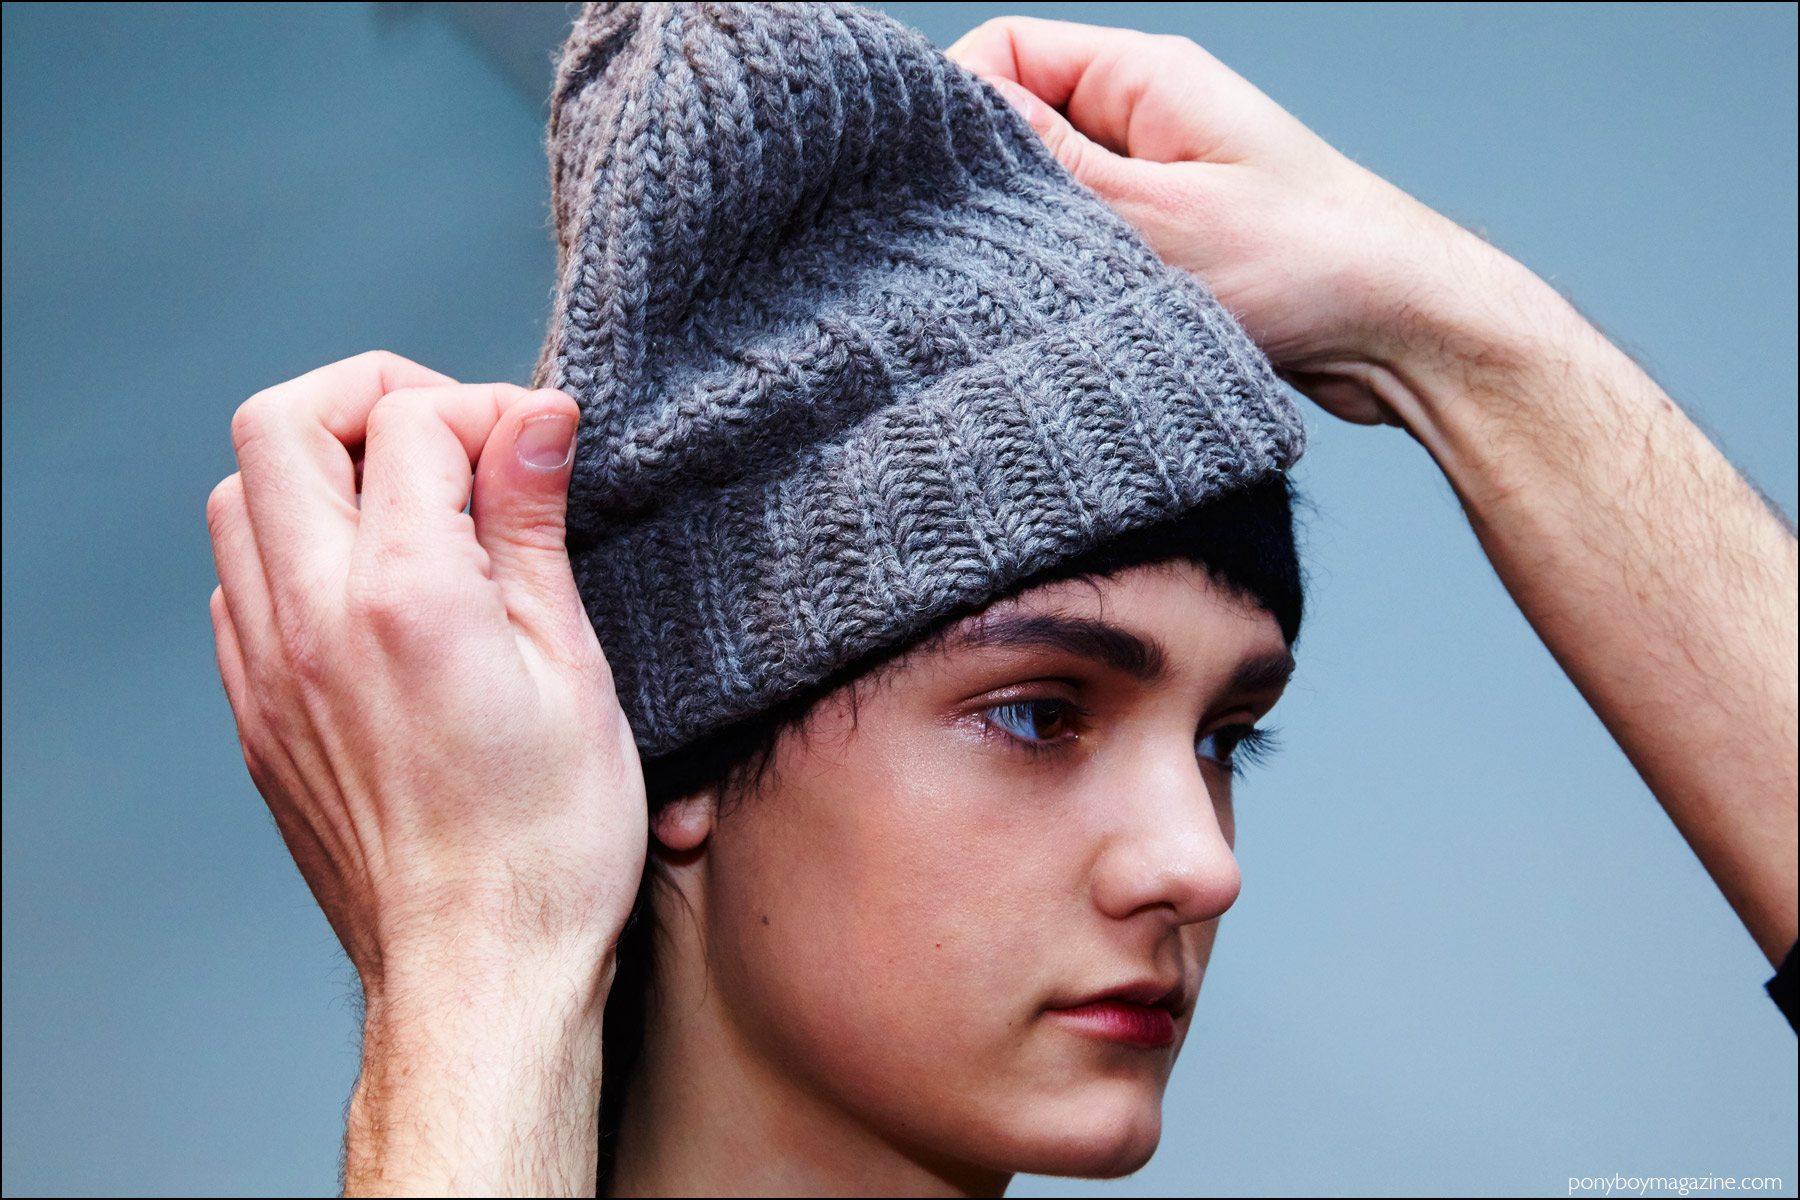 A model gets her wool cap adjusted backstage at A Détacher Fall 2016 womenswear show. Photography by Alexander Thompson for Ponyboy magazine NY.